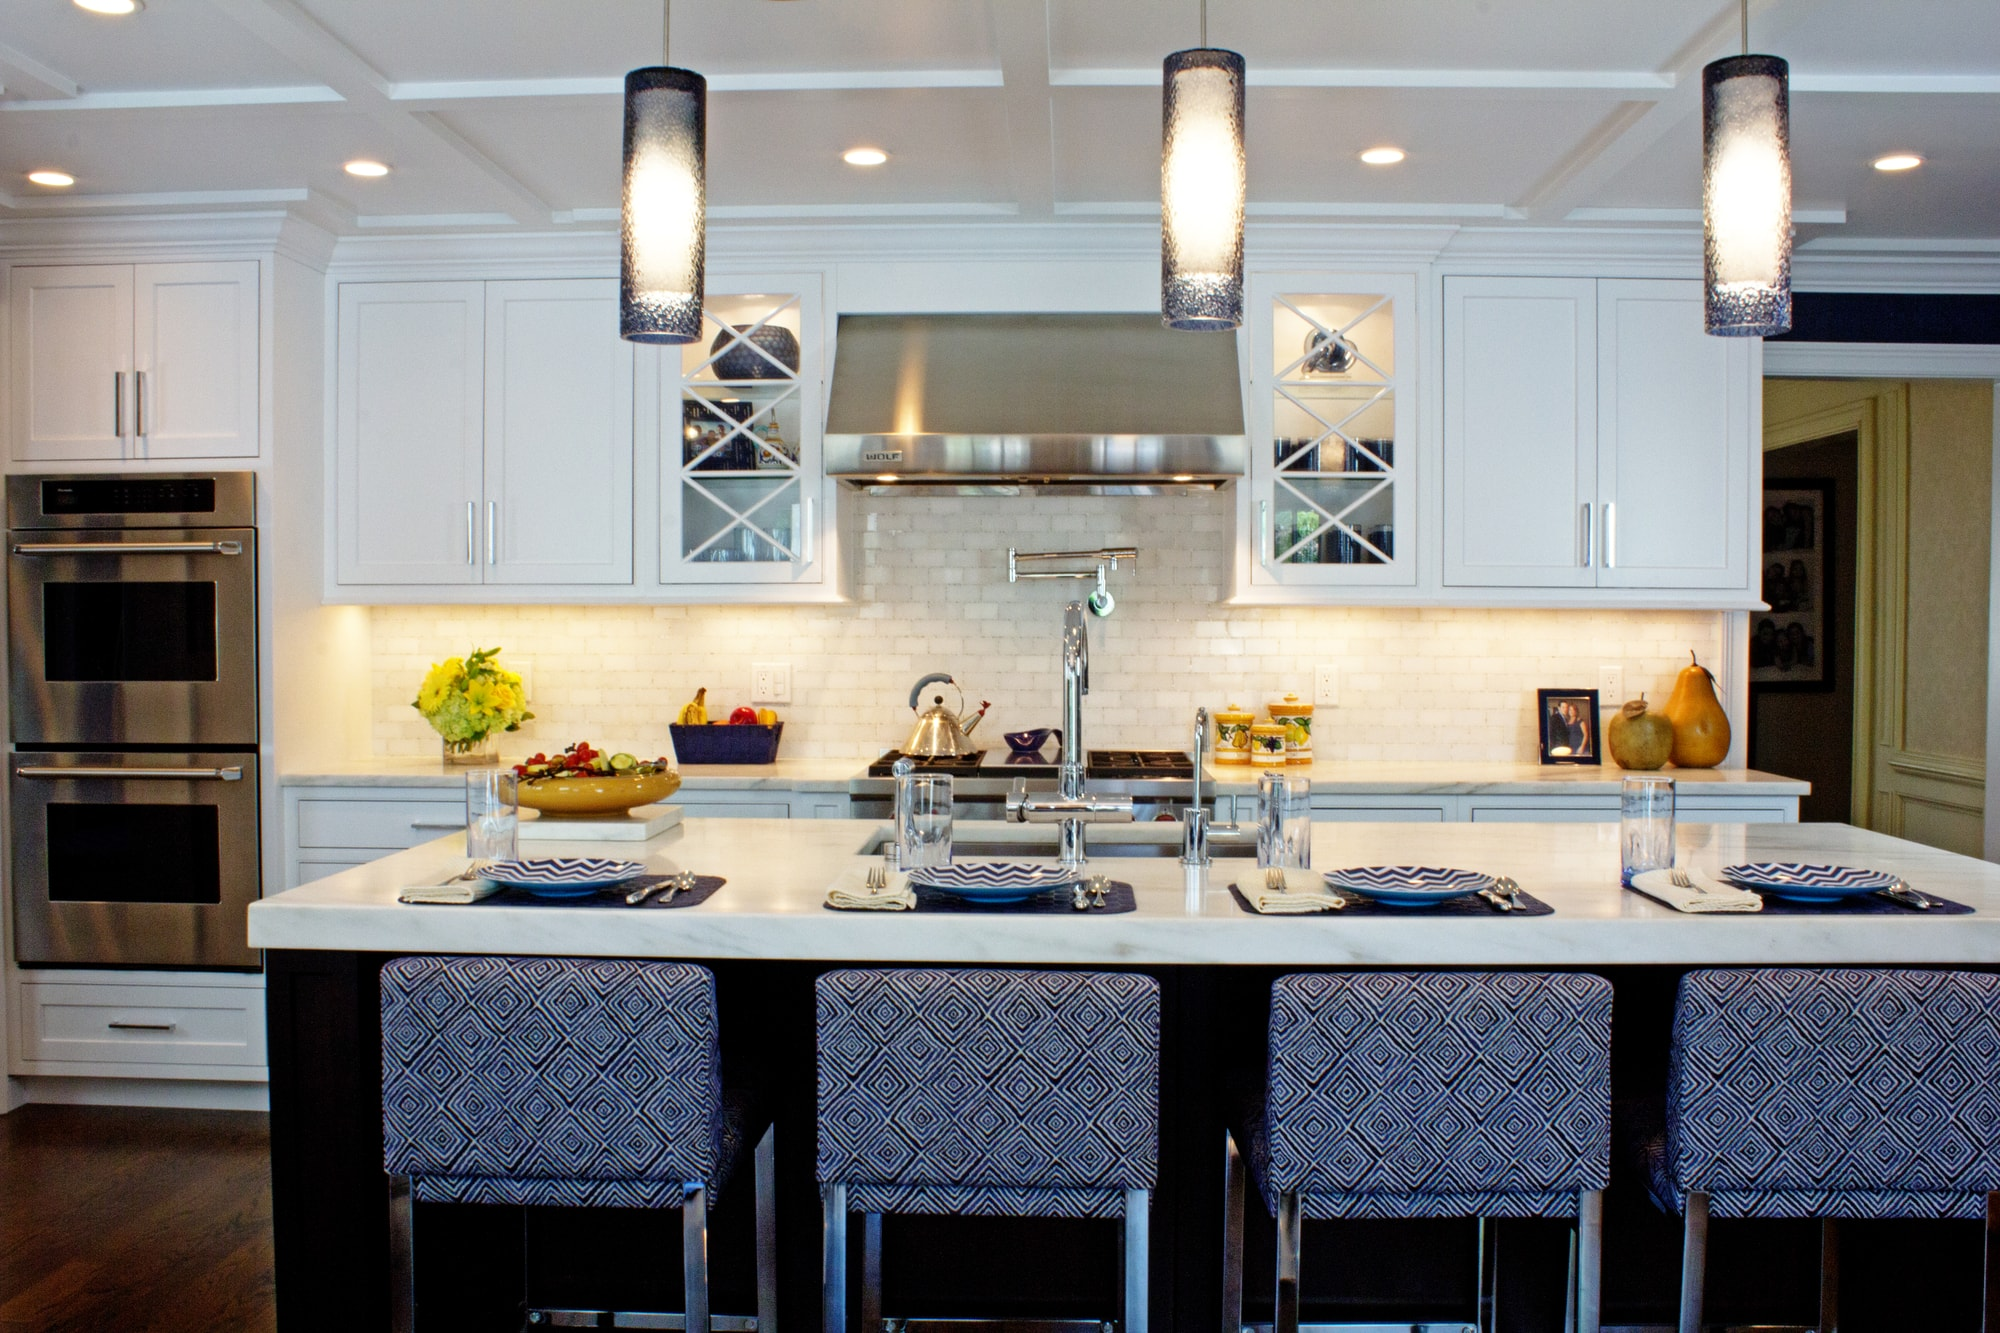 Transitional style kitchen with elegant pendant light fixtures